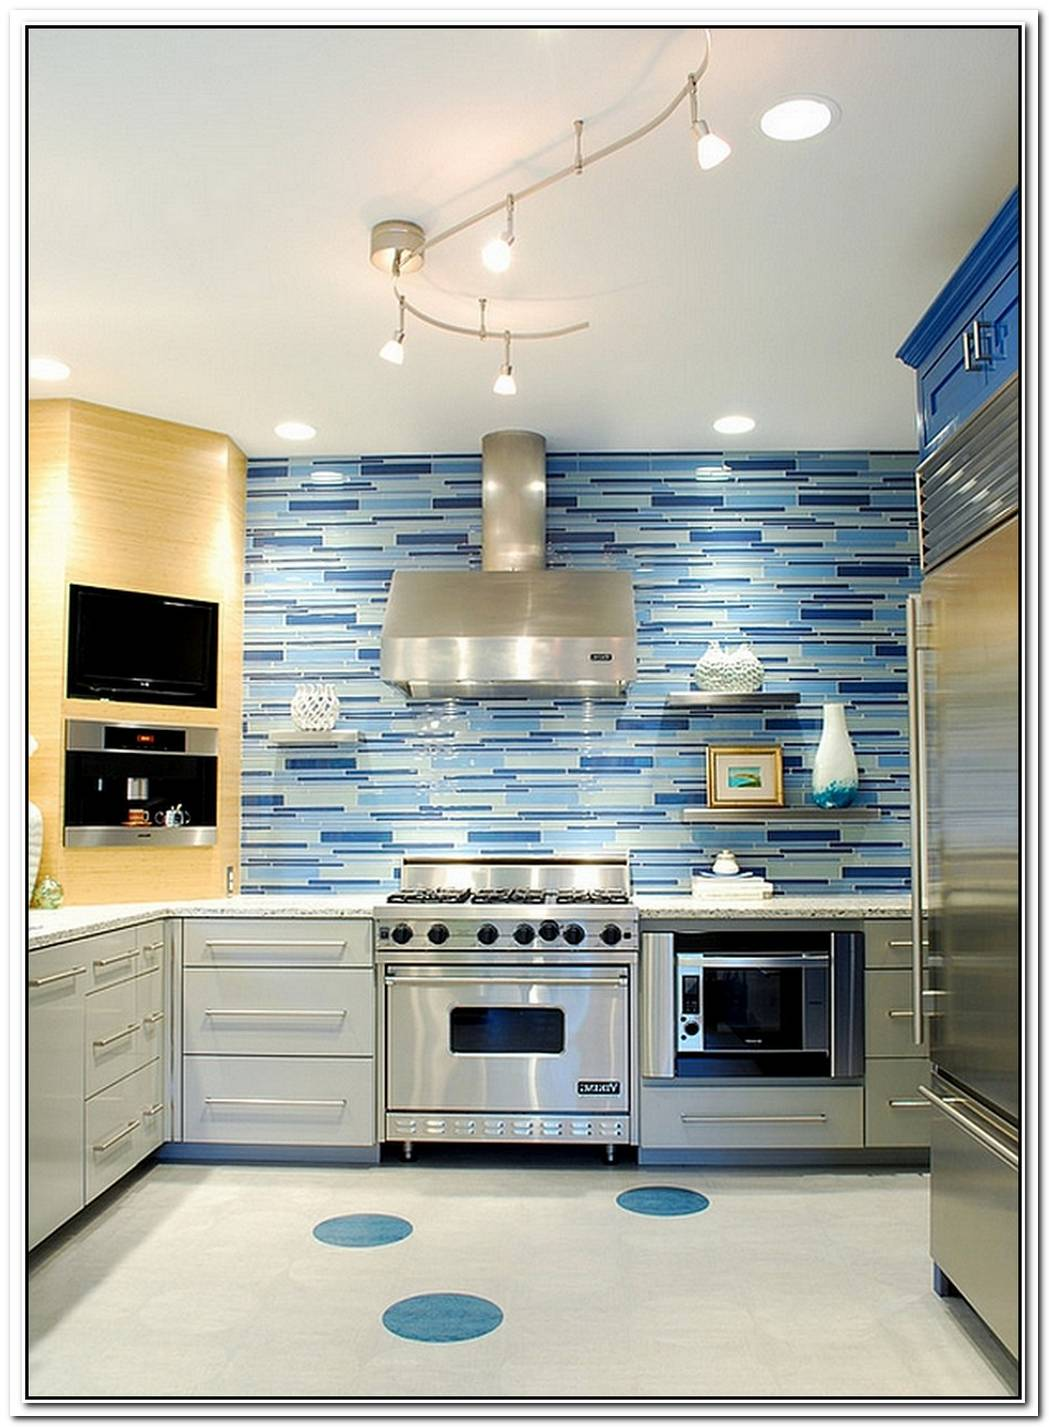 Kitchen Backsplash IdeasA Splattering Of The Most Popular Colors